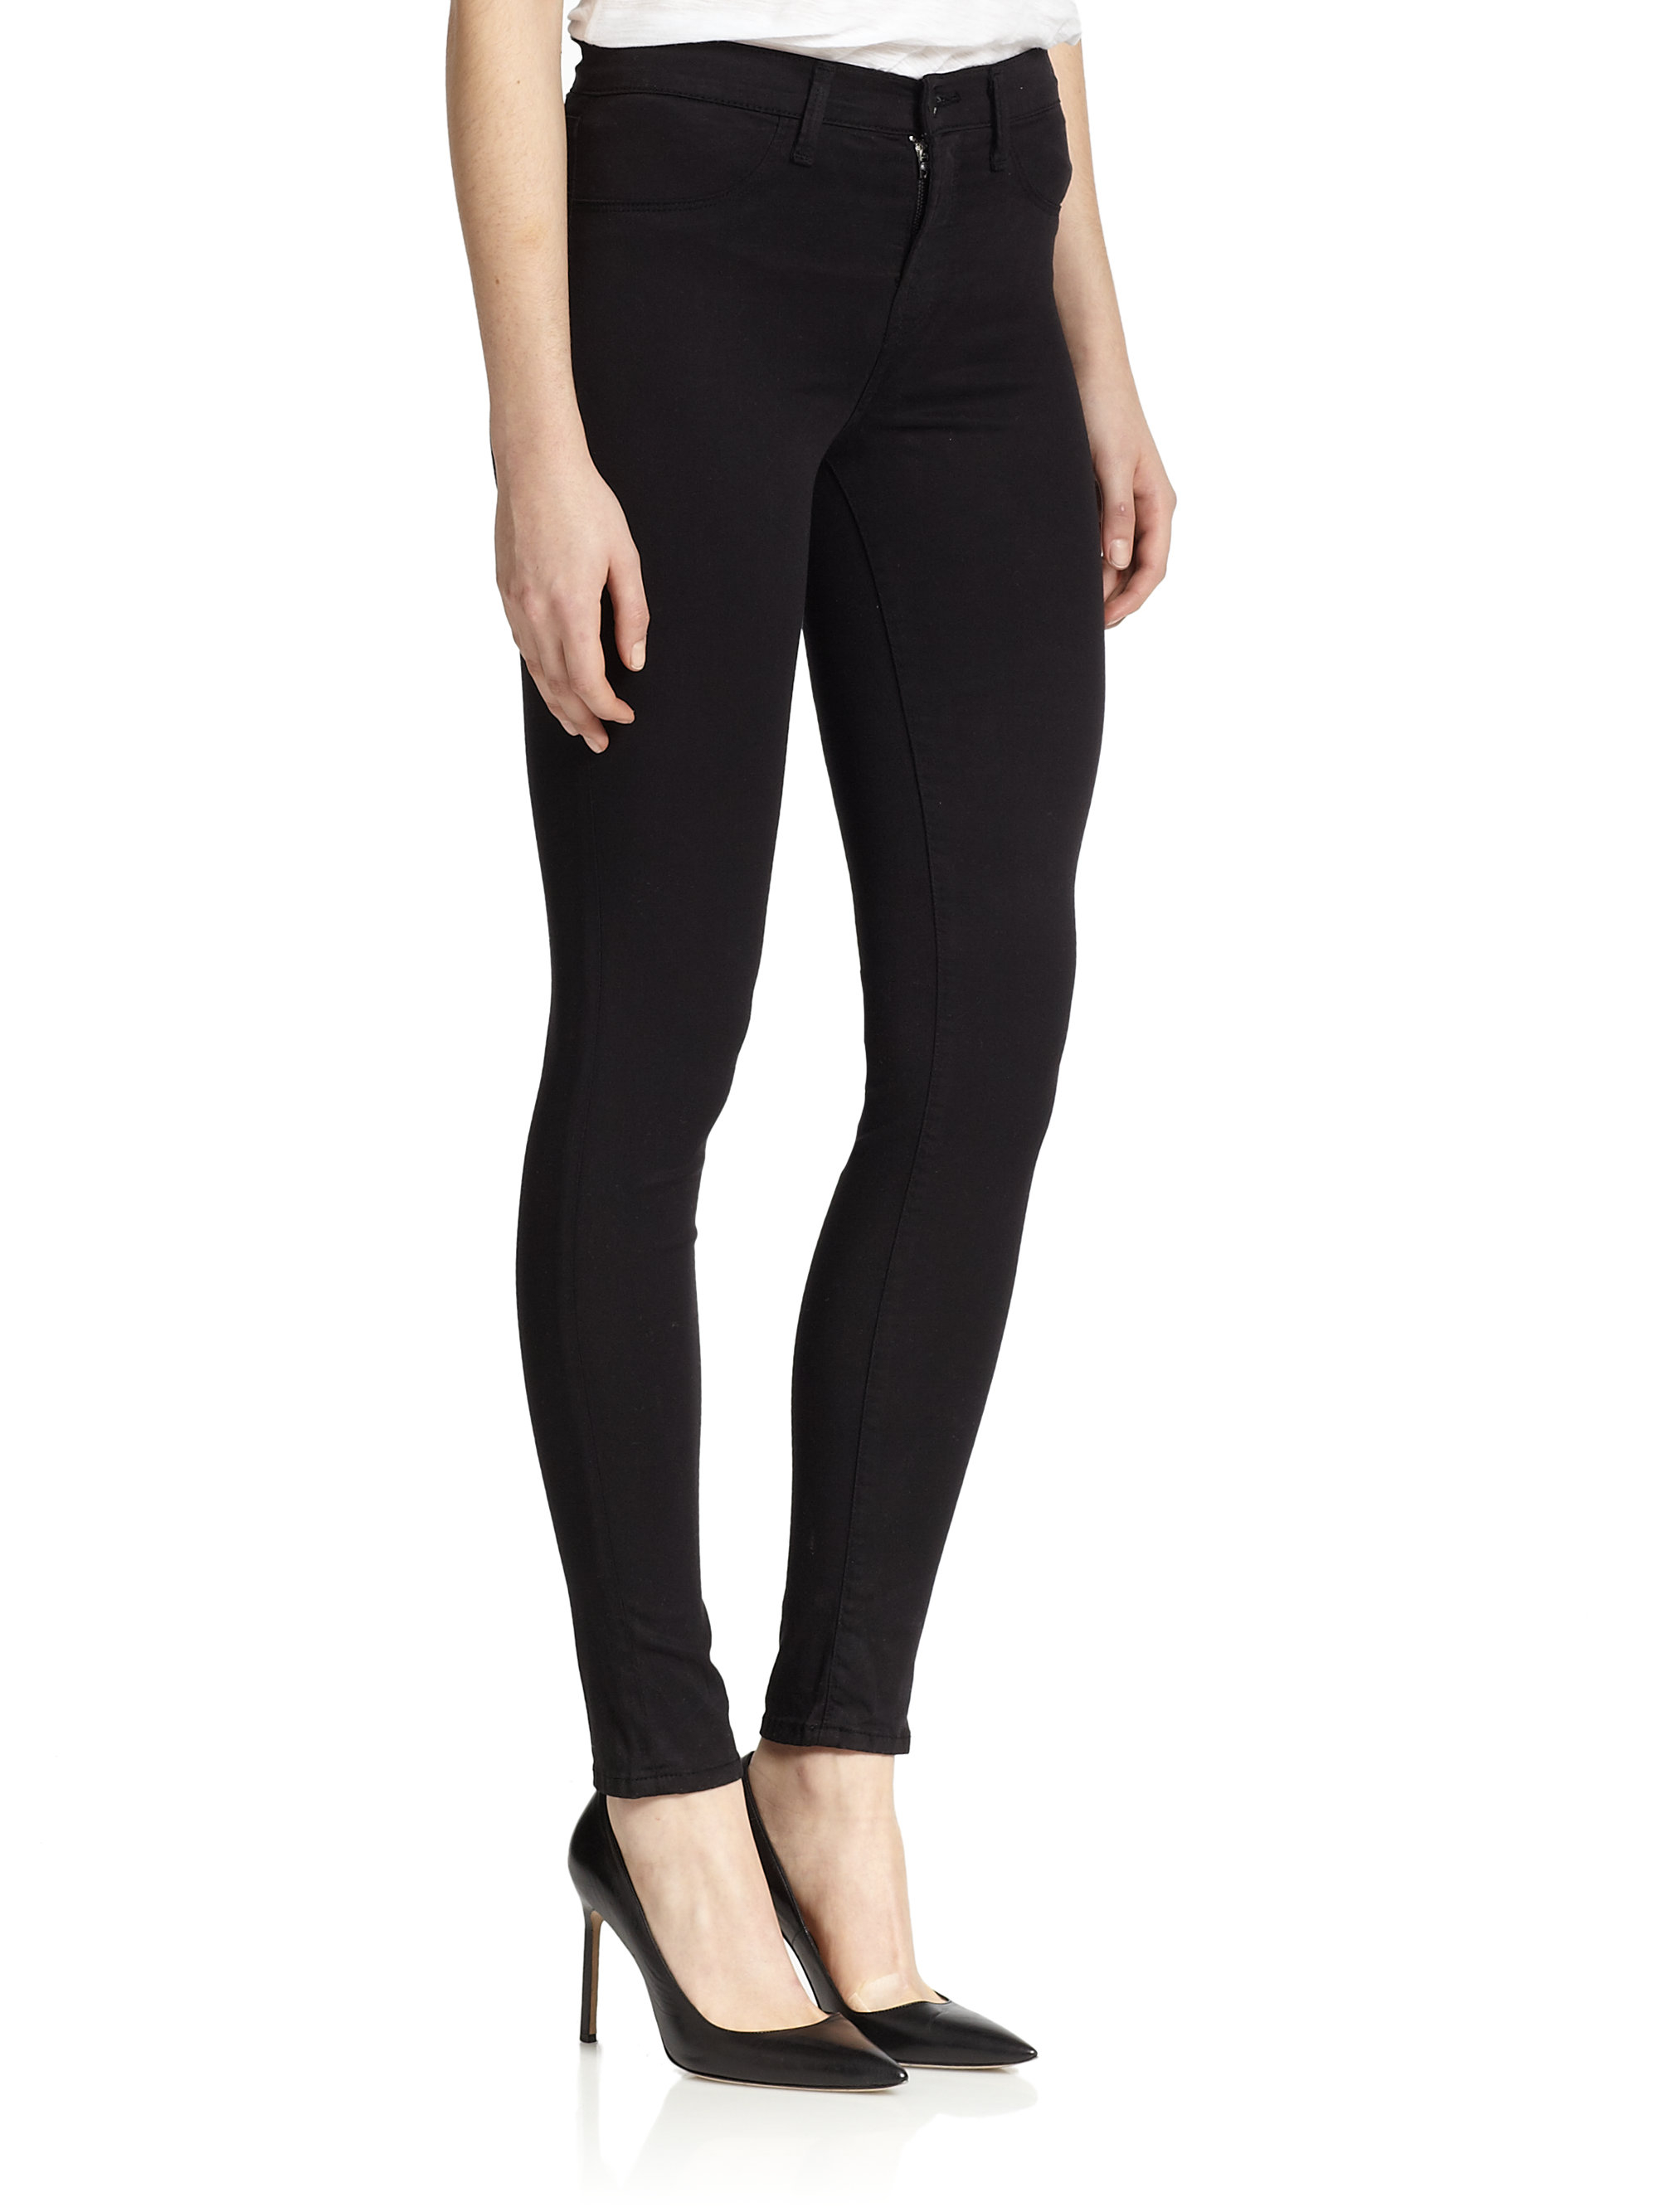 J brand mid rise luxe sateen skinny jeans